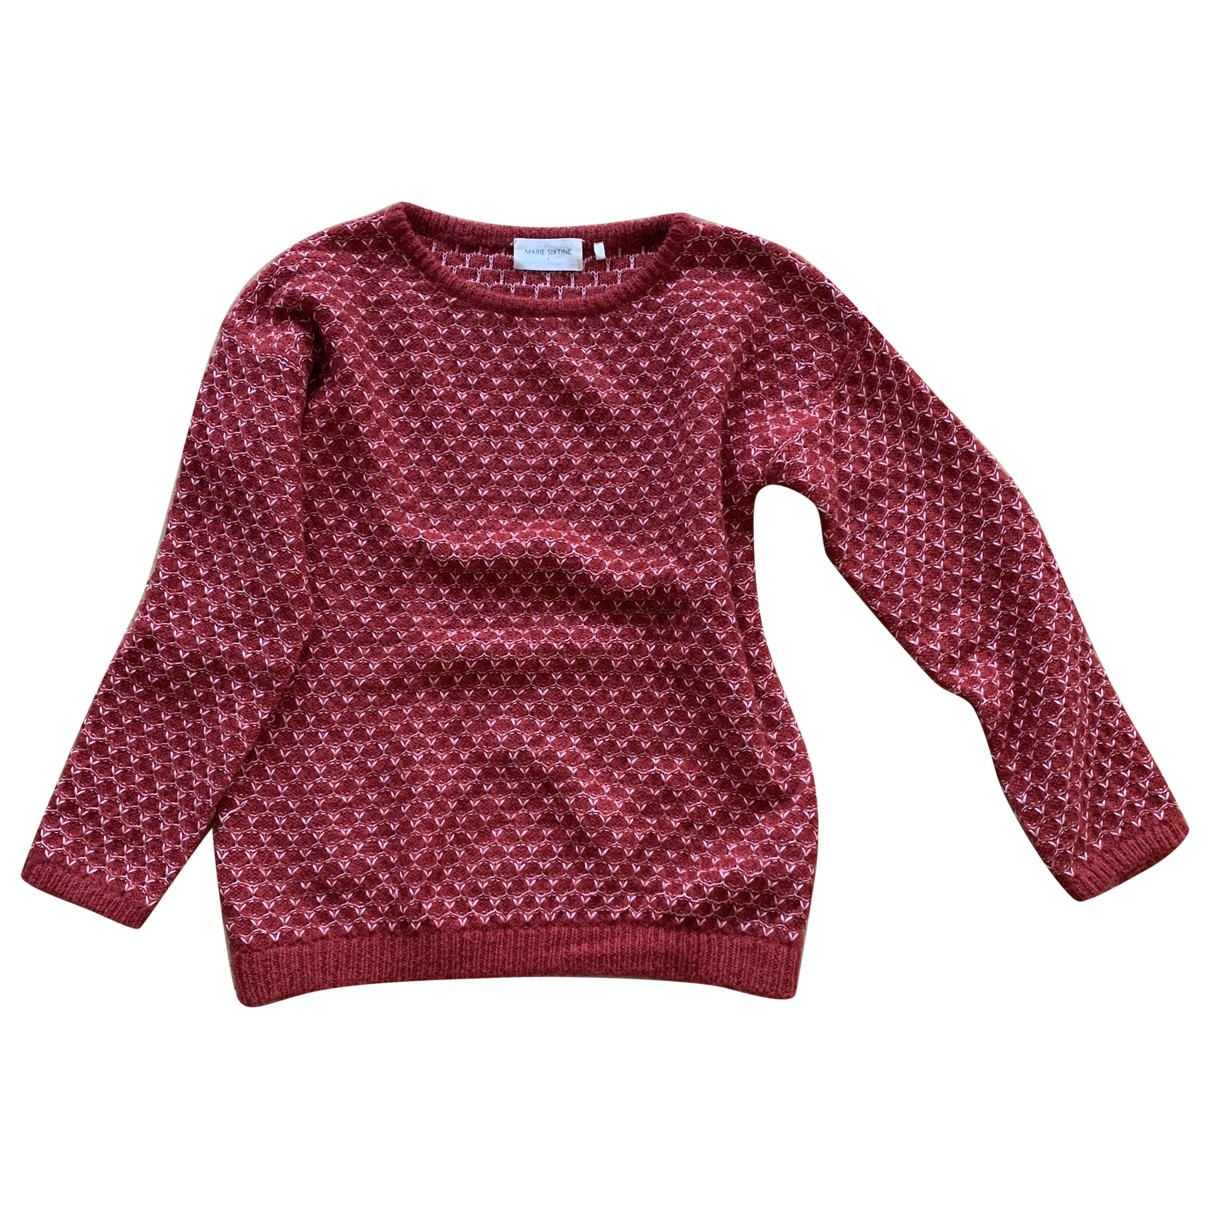 Marie Sixtine \N Pullover in  Rot Wolle